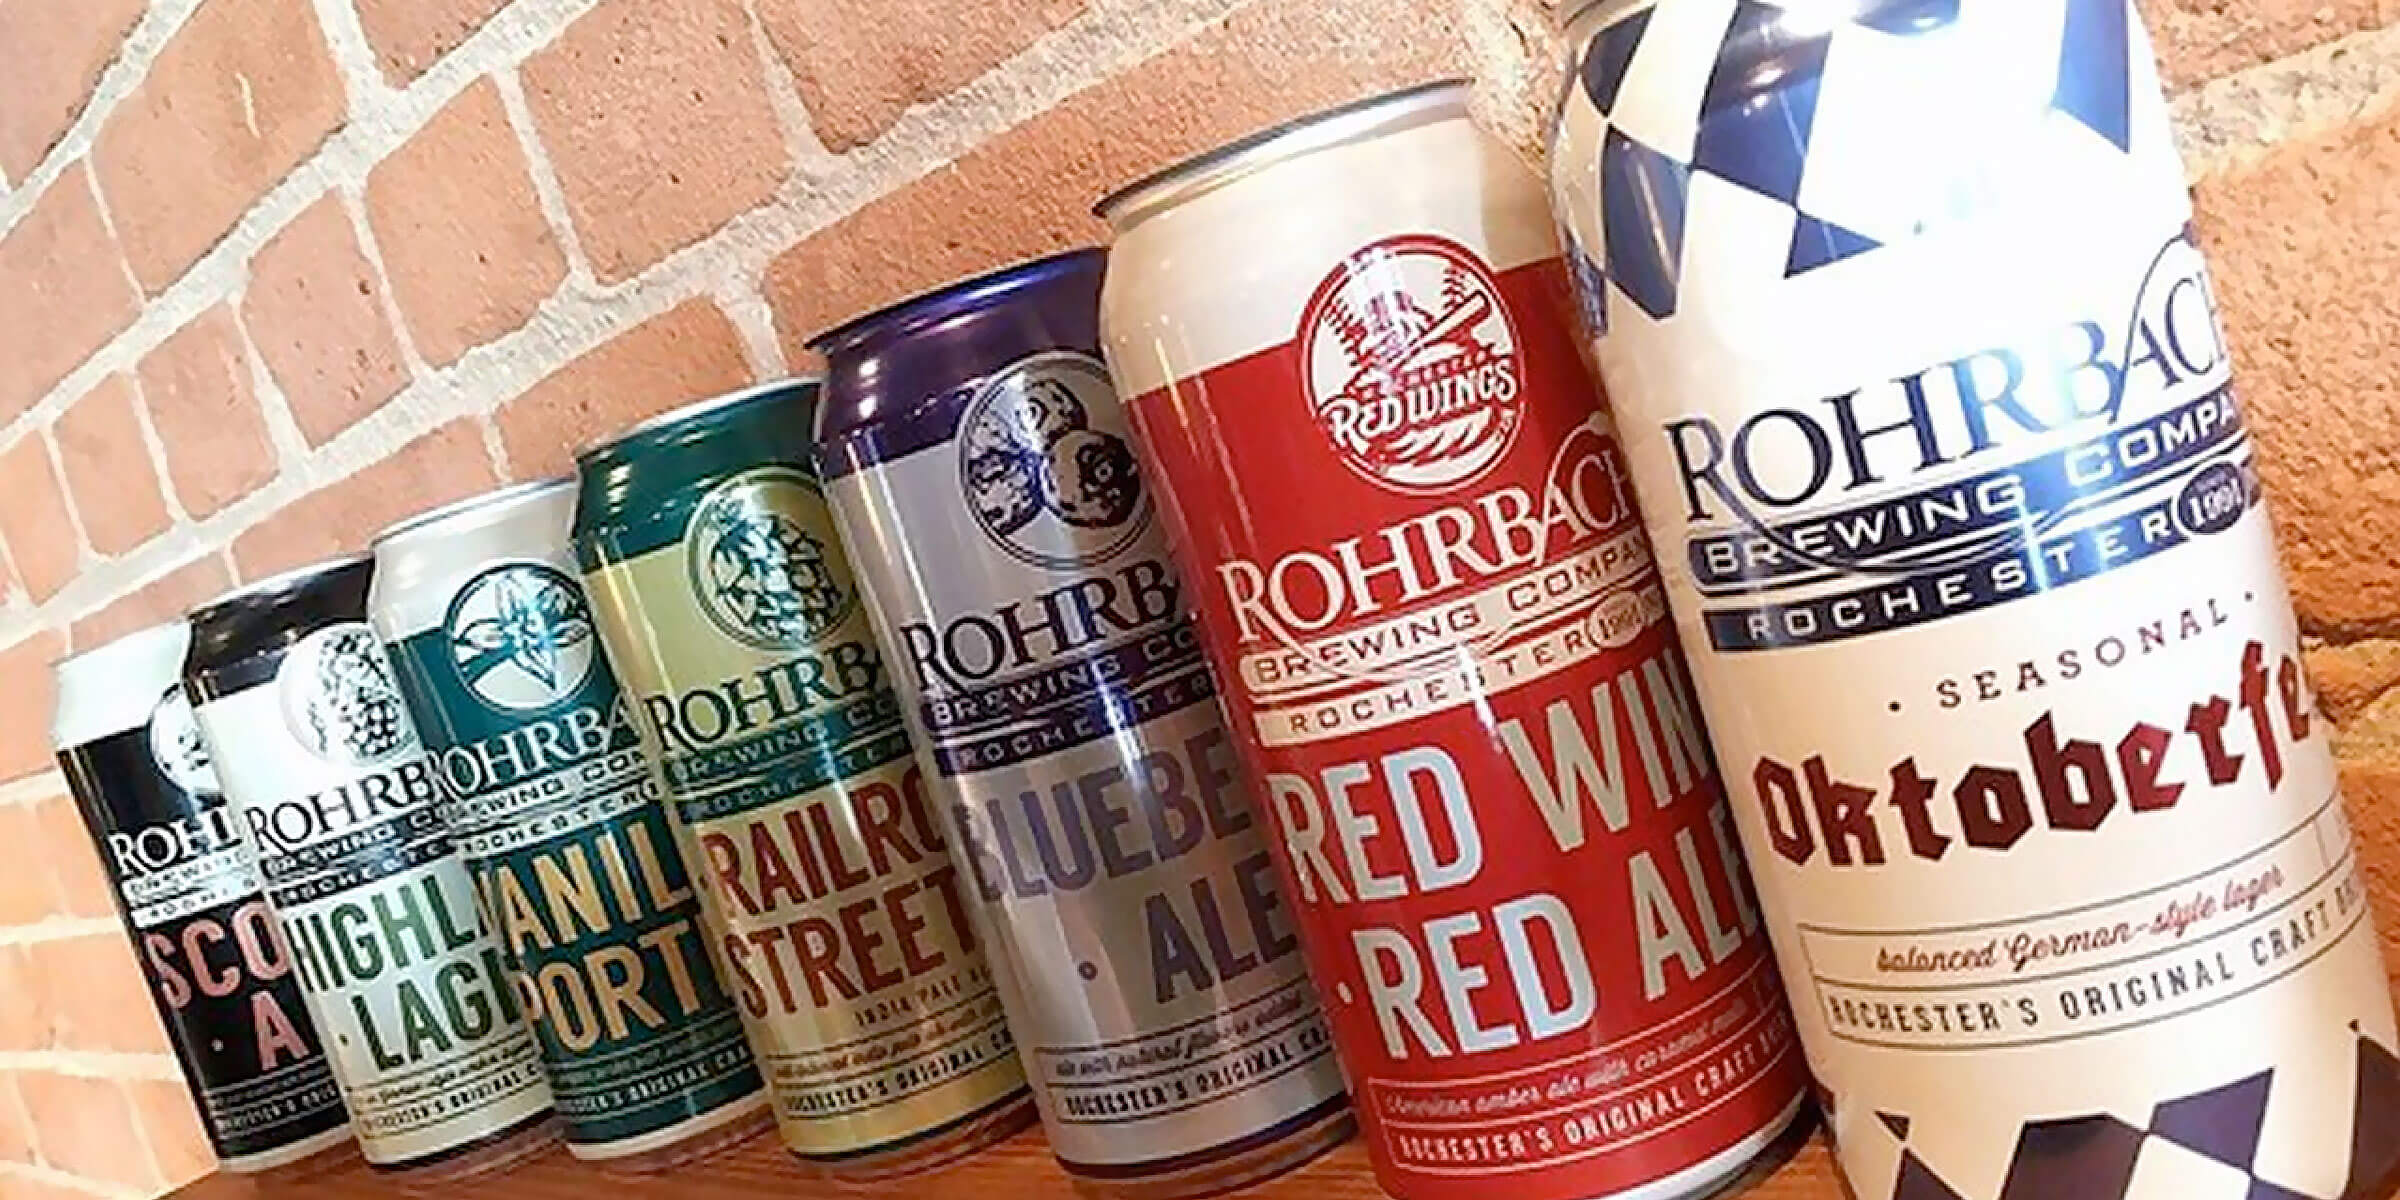 Lineup of canned beers offered by Rohrbach Brewing Company